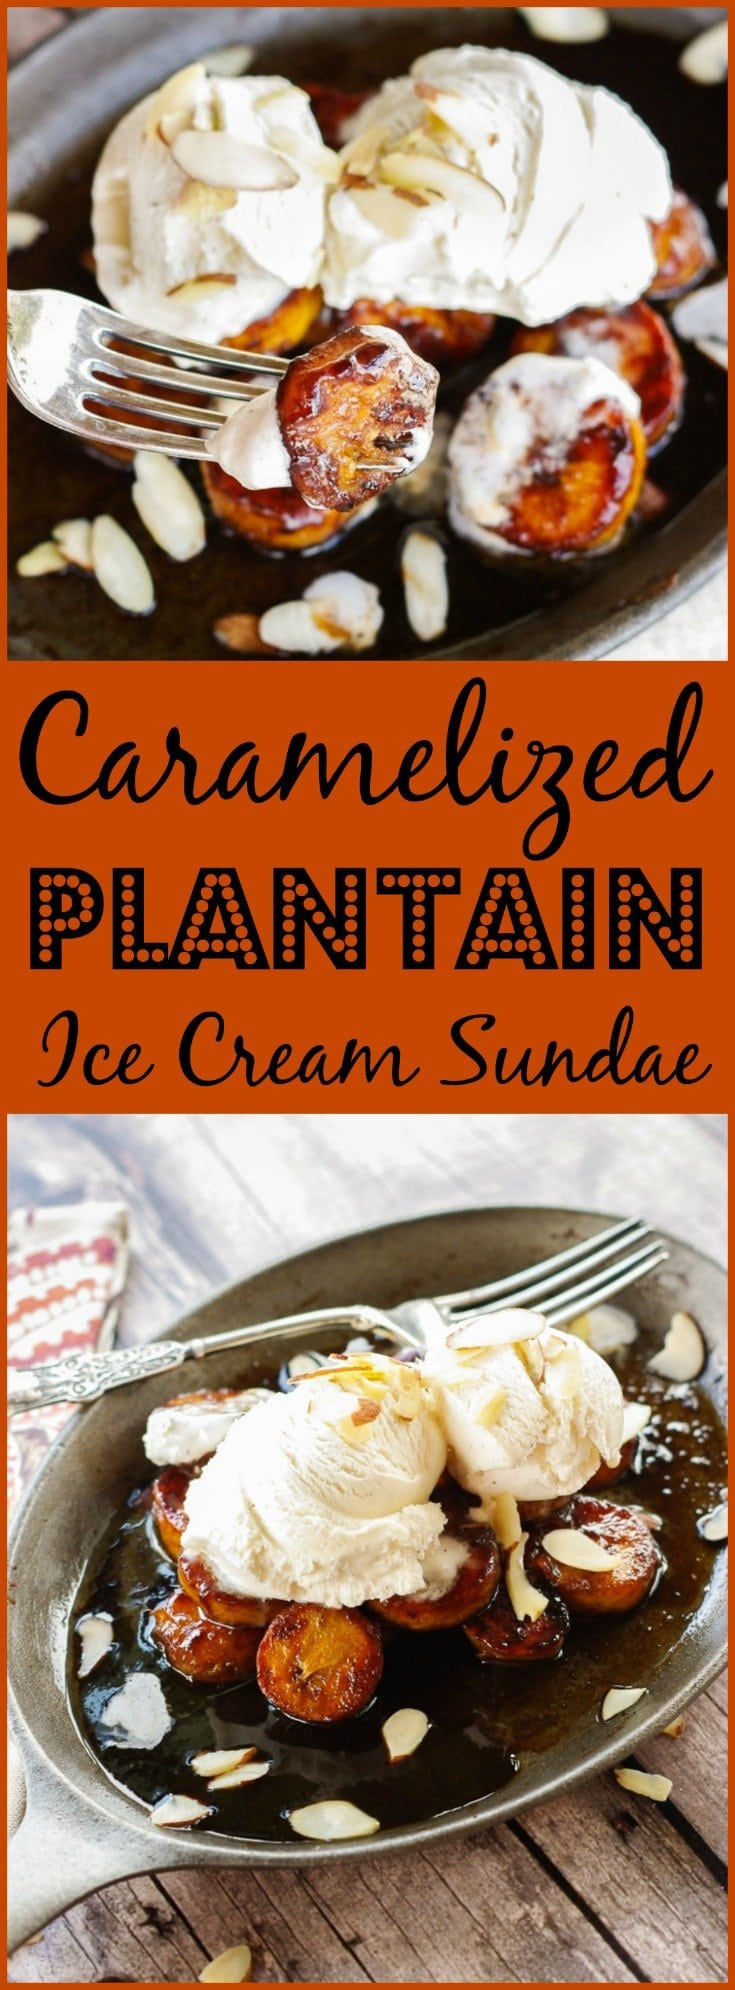 Caramelized Plantain Ice Cream Sundae | www.homeandplate.com | Turn an ordinary banana split into a dessert you could only get at a gourmet restaurant.